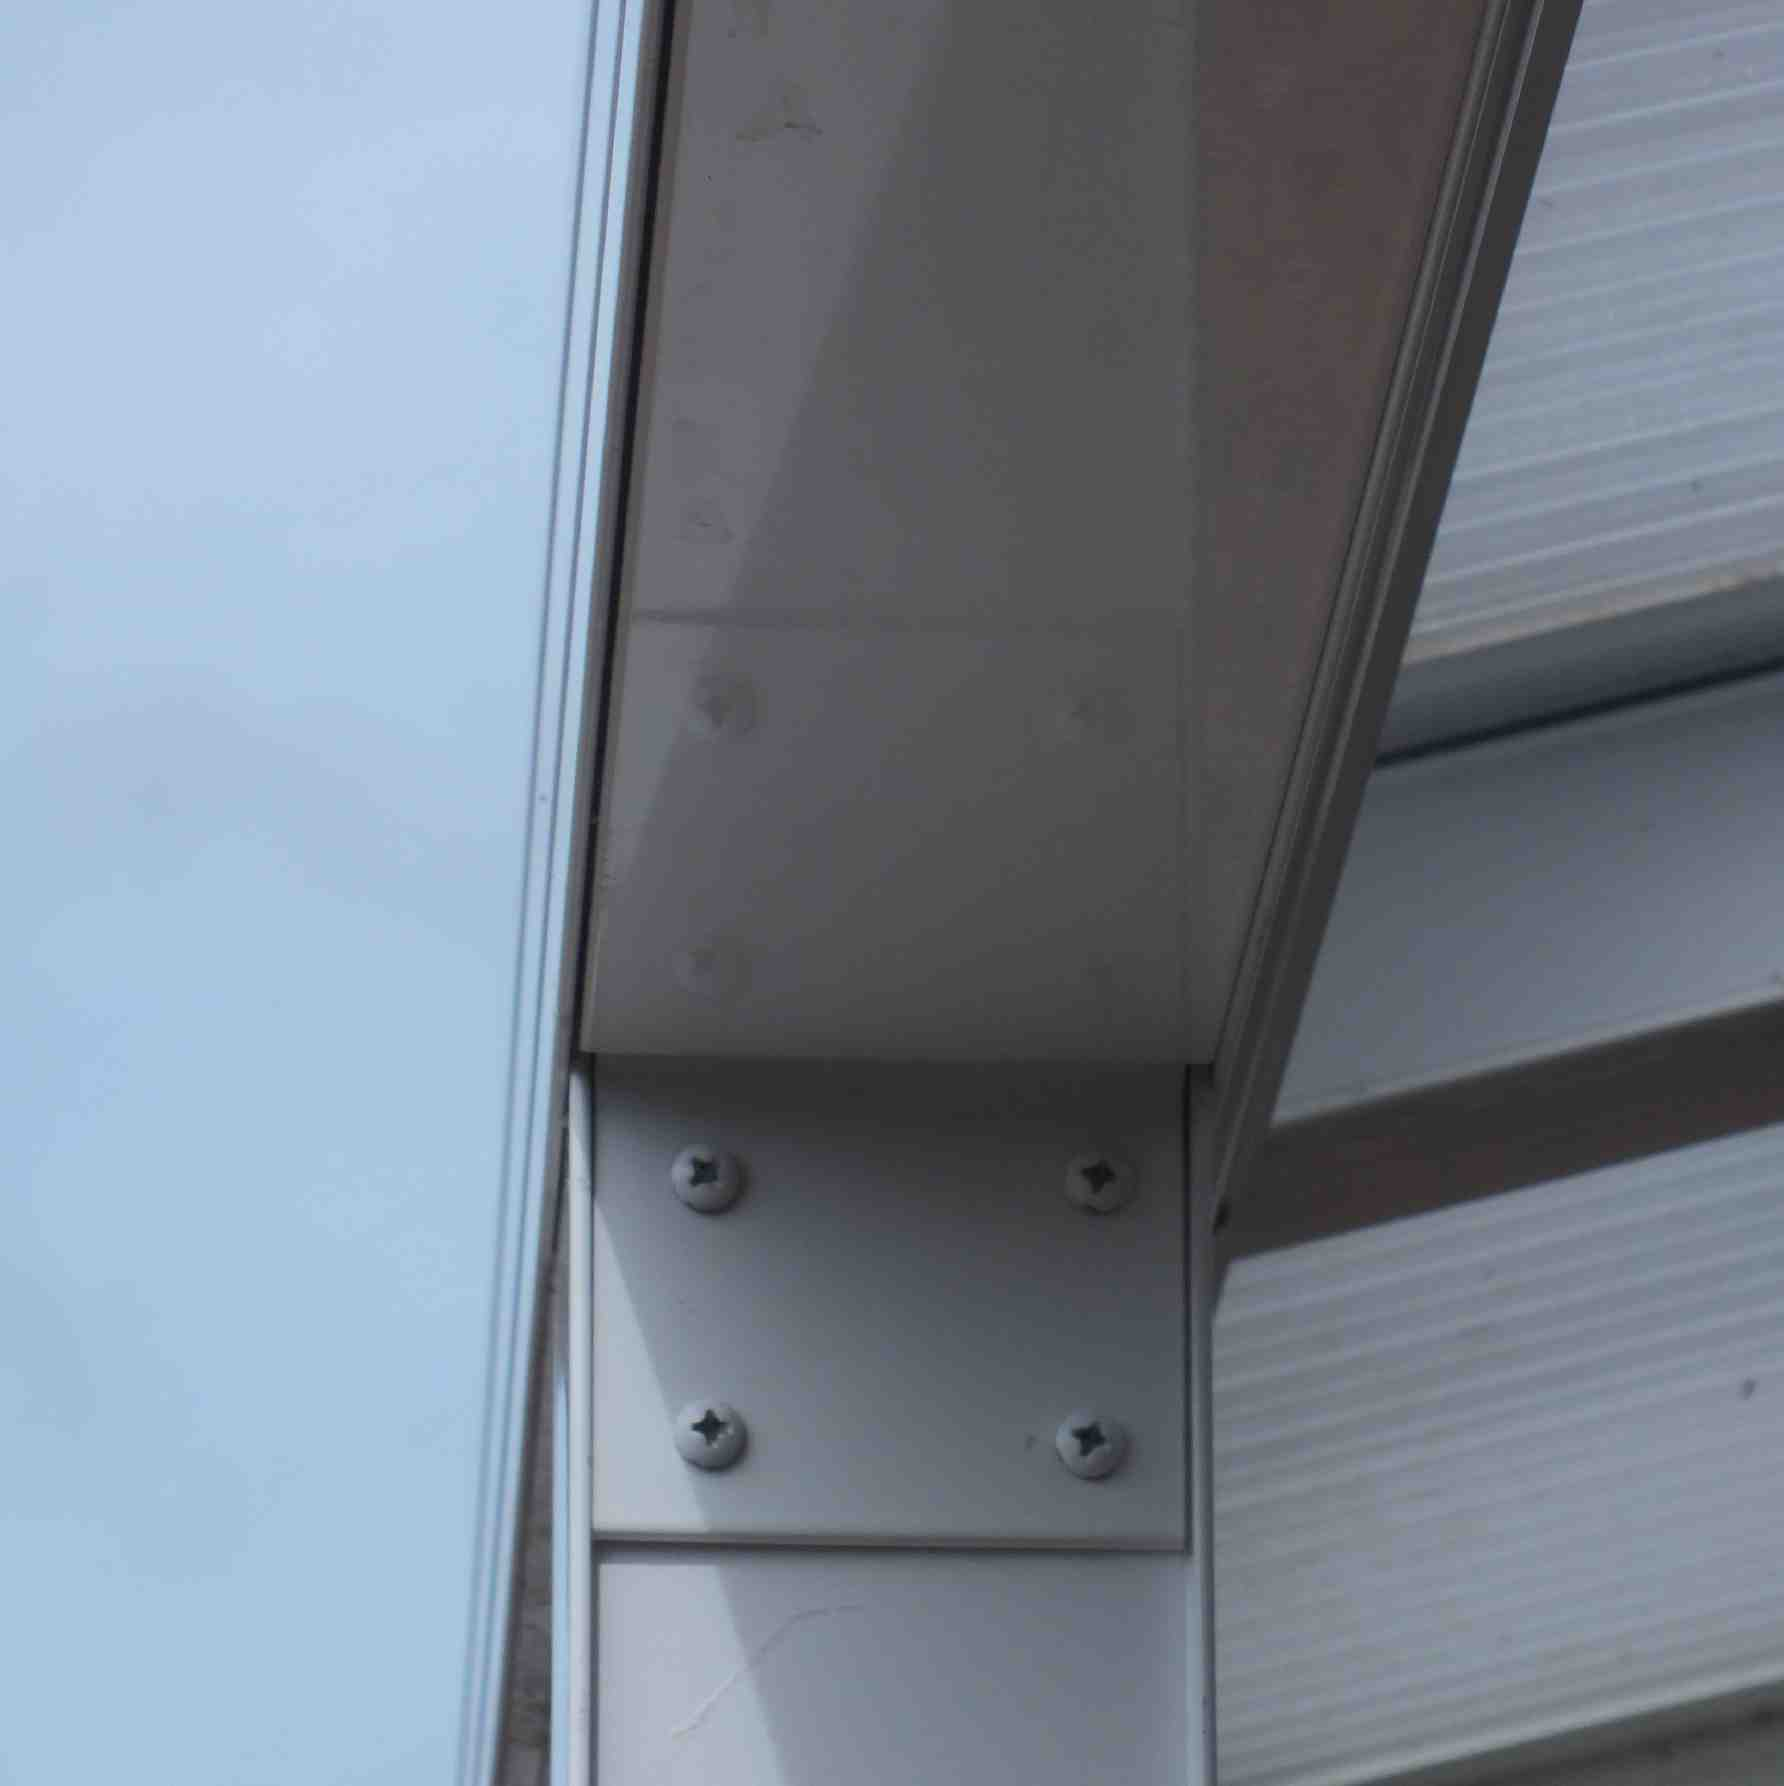 Affordable Omega Verandah with 6mm Glass Clear Plate Polycarbonate Glazing - 2.8m (W) x 2.5m (P), (2) Supporting Posts